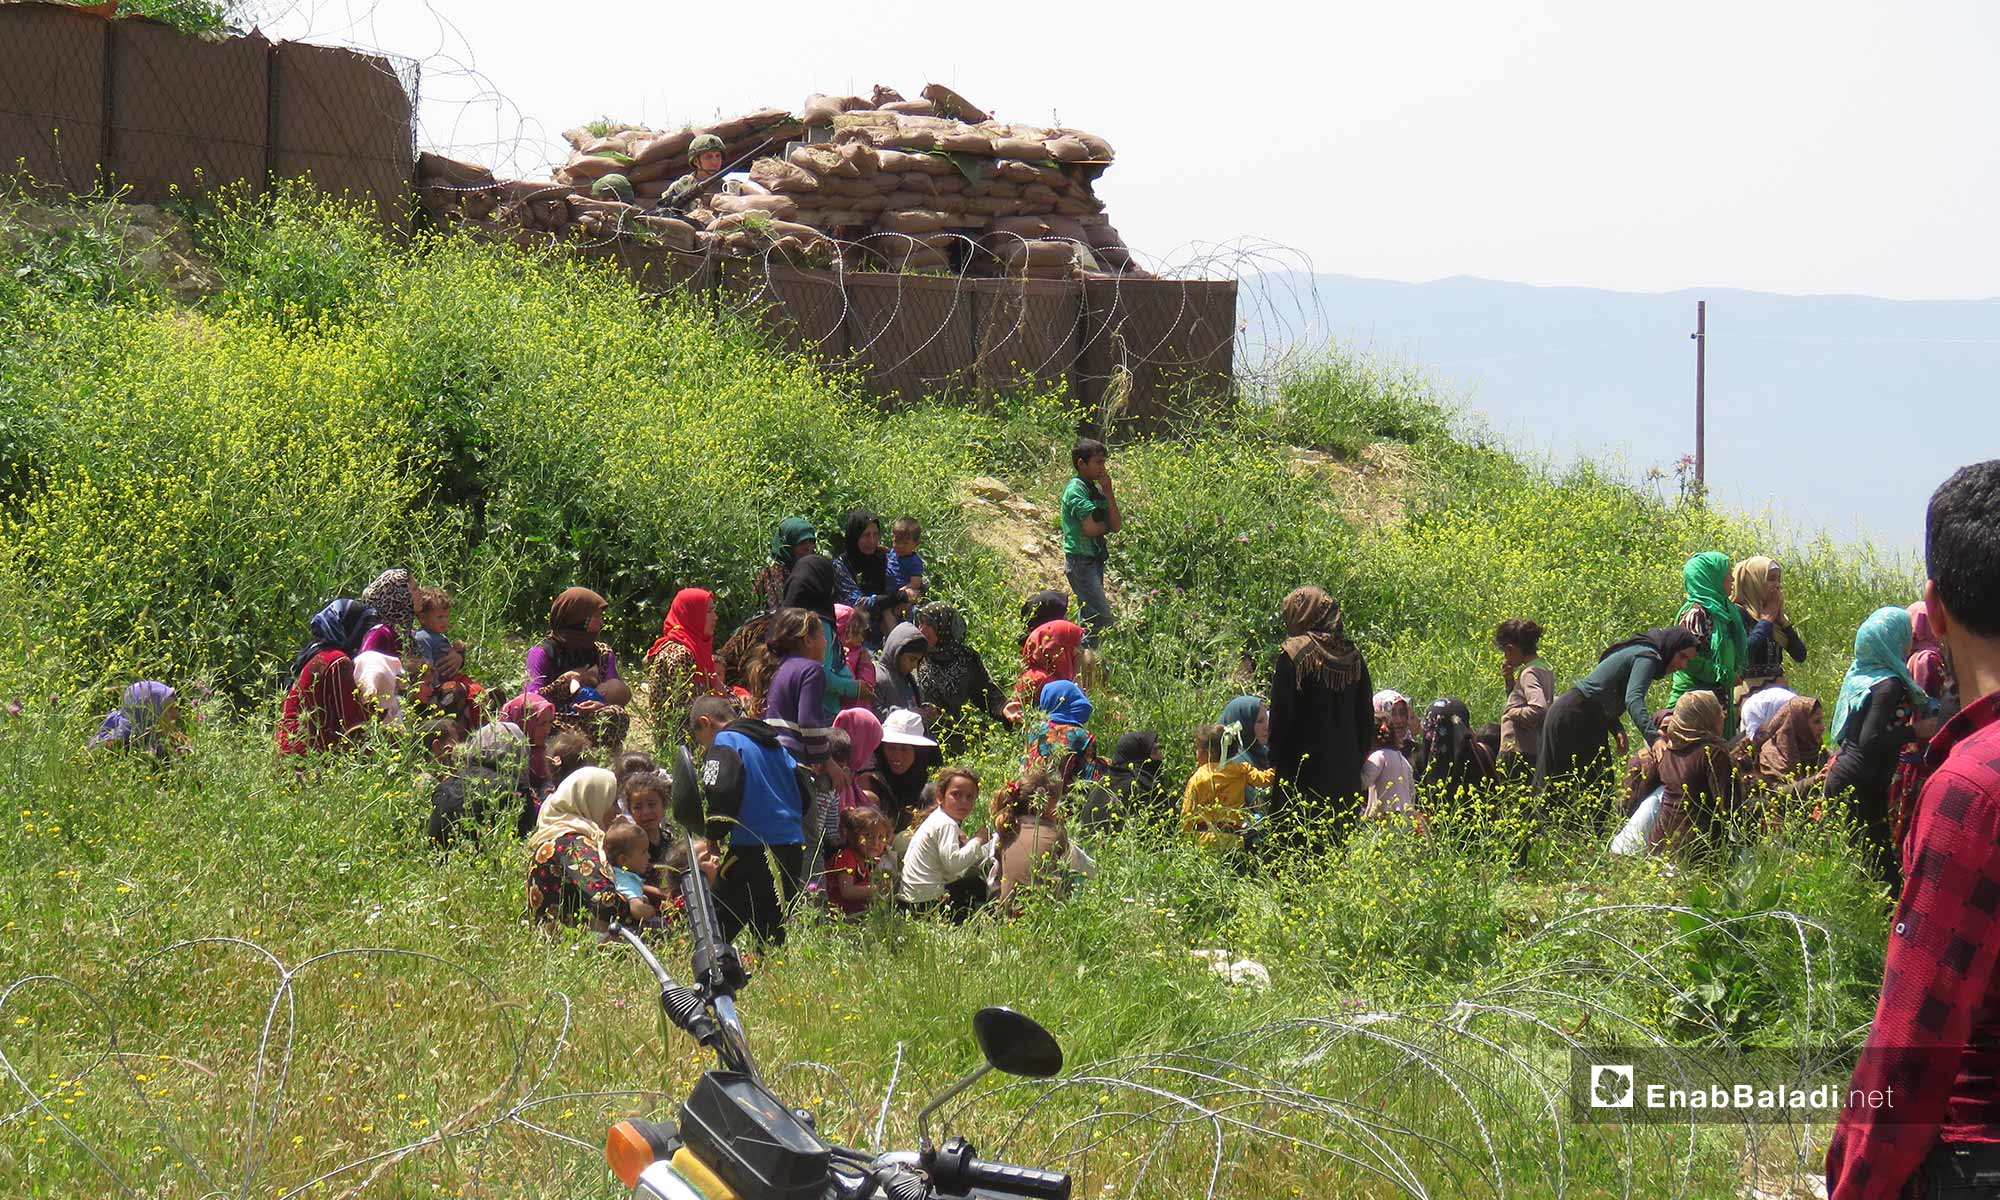 Civilians displaced to the vicinity of the Turkish observation point in Shair al-Maghar, western Hama, fleeing the shelling – April 29, 2019 (Enab Baladi)